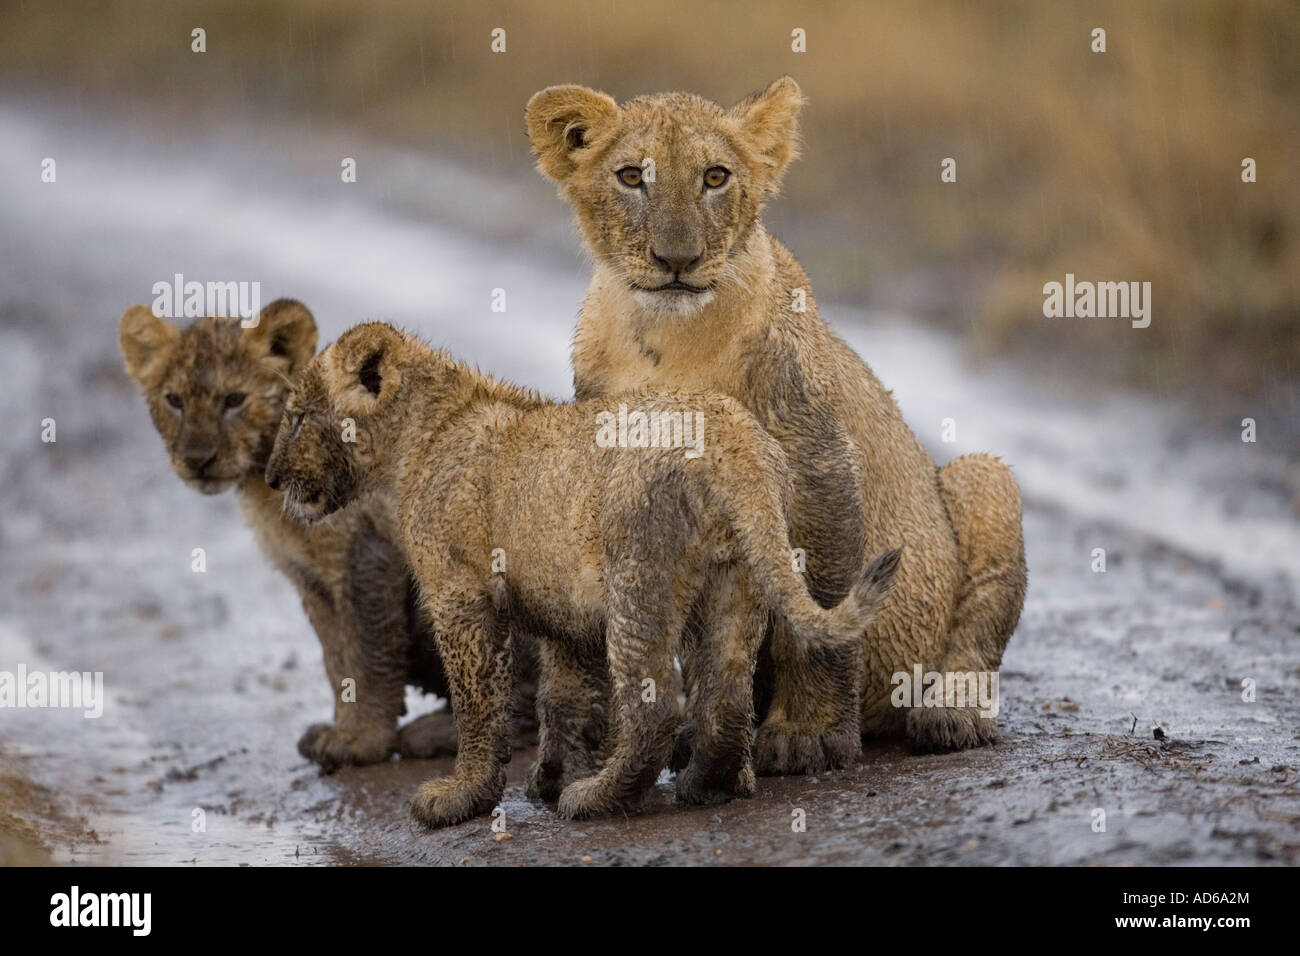 Africa Kenya Masai Mara Game Reserve Lion cubs Panthera leo sitting covered in mud while playing in rain storm Stock Photo